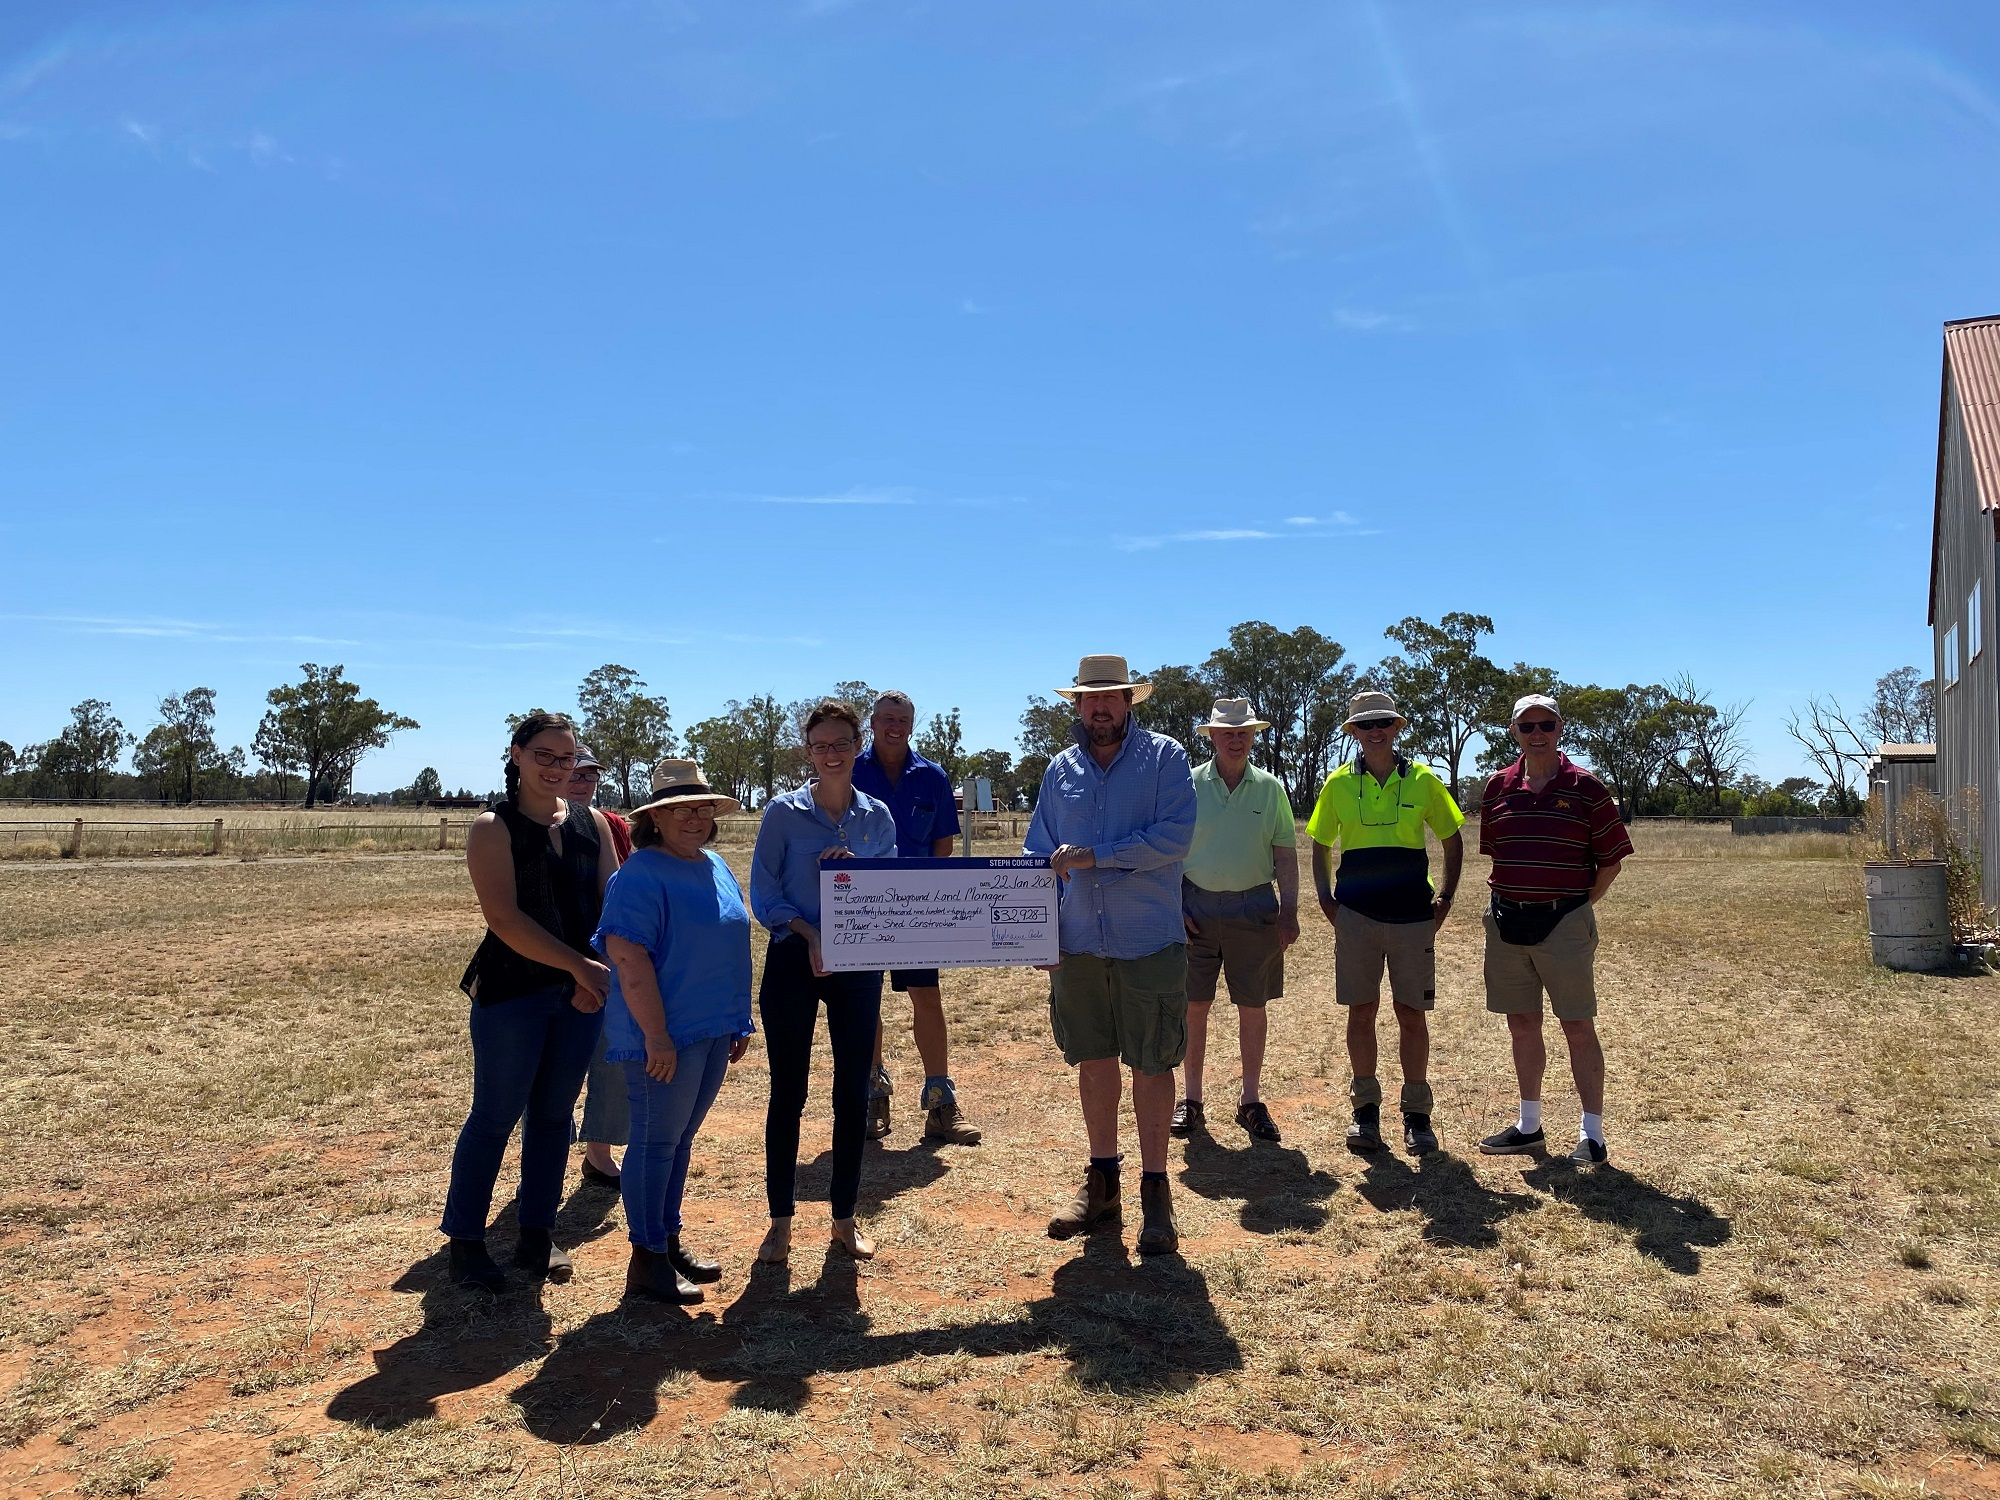 Steph Cooke and members of the Ganmain Showground land management committee stand outside on grass and hold a large cheque.